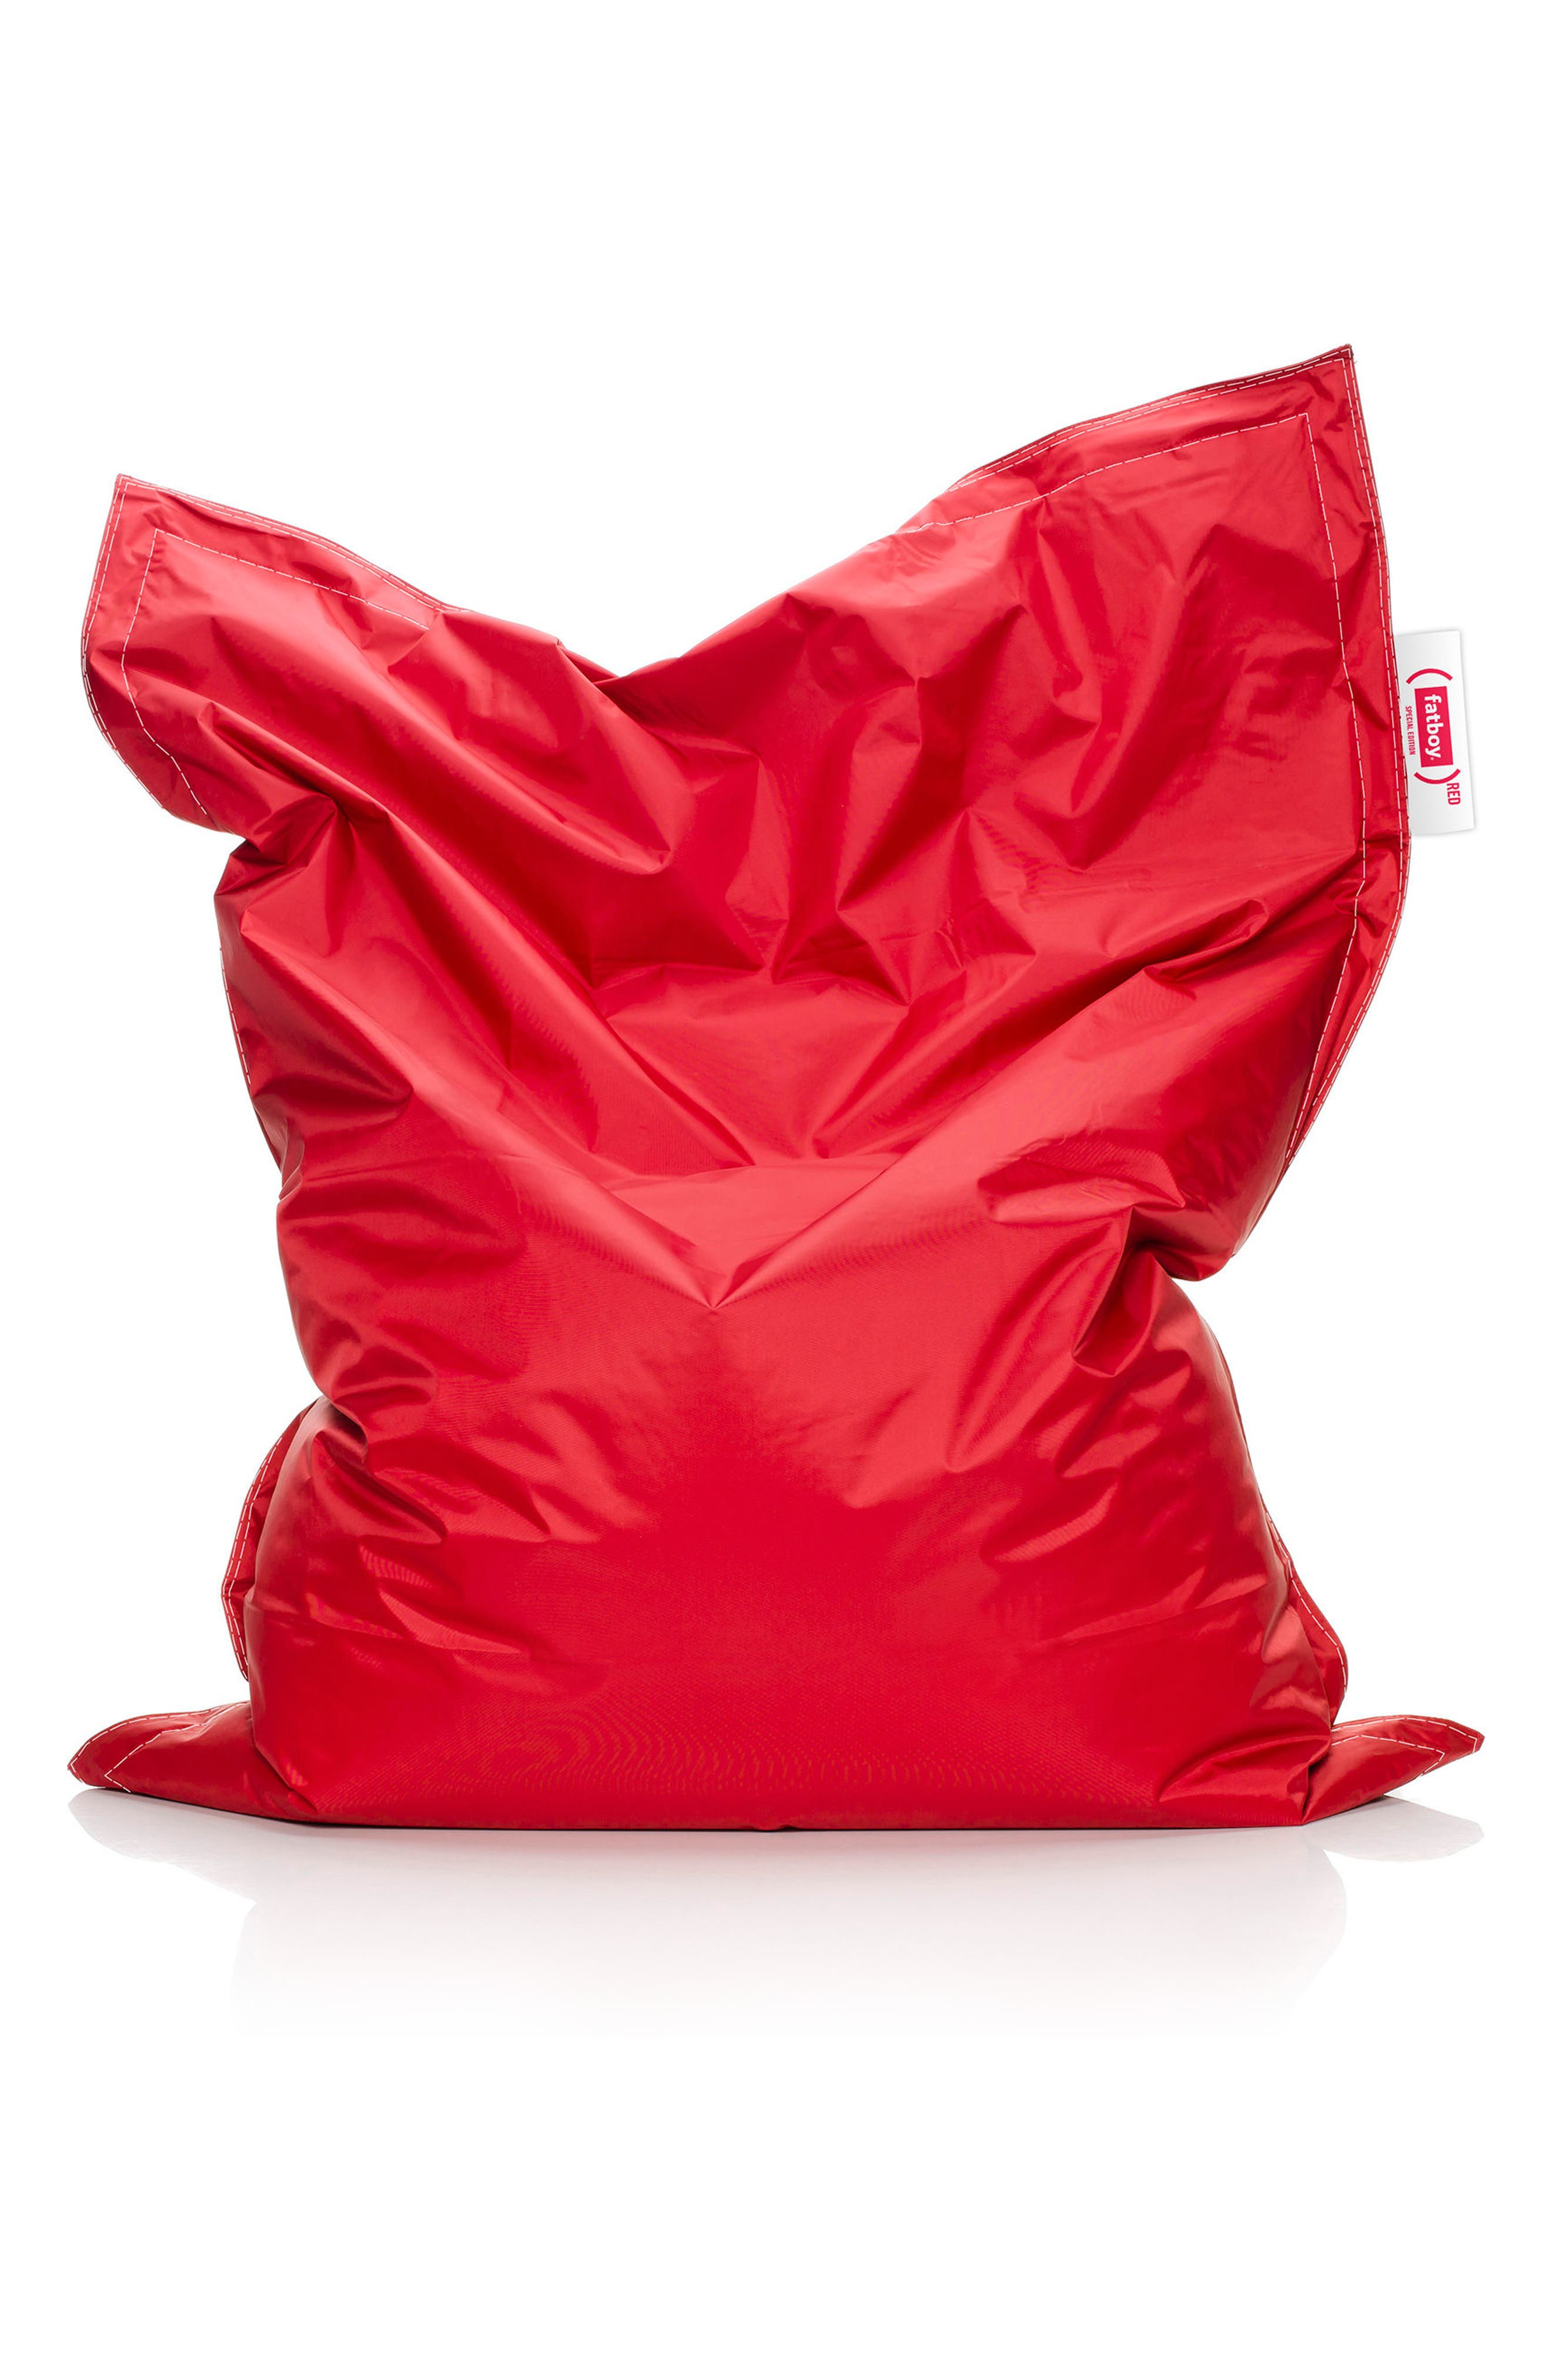 Main Image - Fatboy Junior RED Special Edition Beanbag Chair